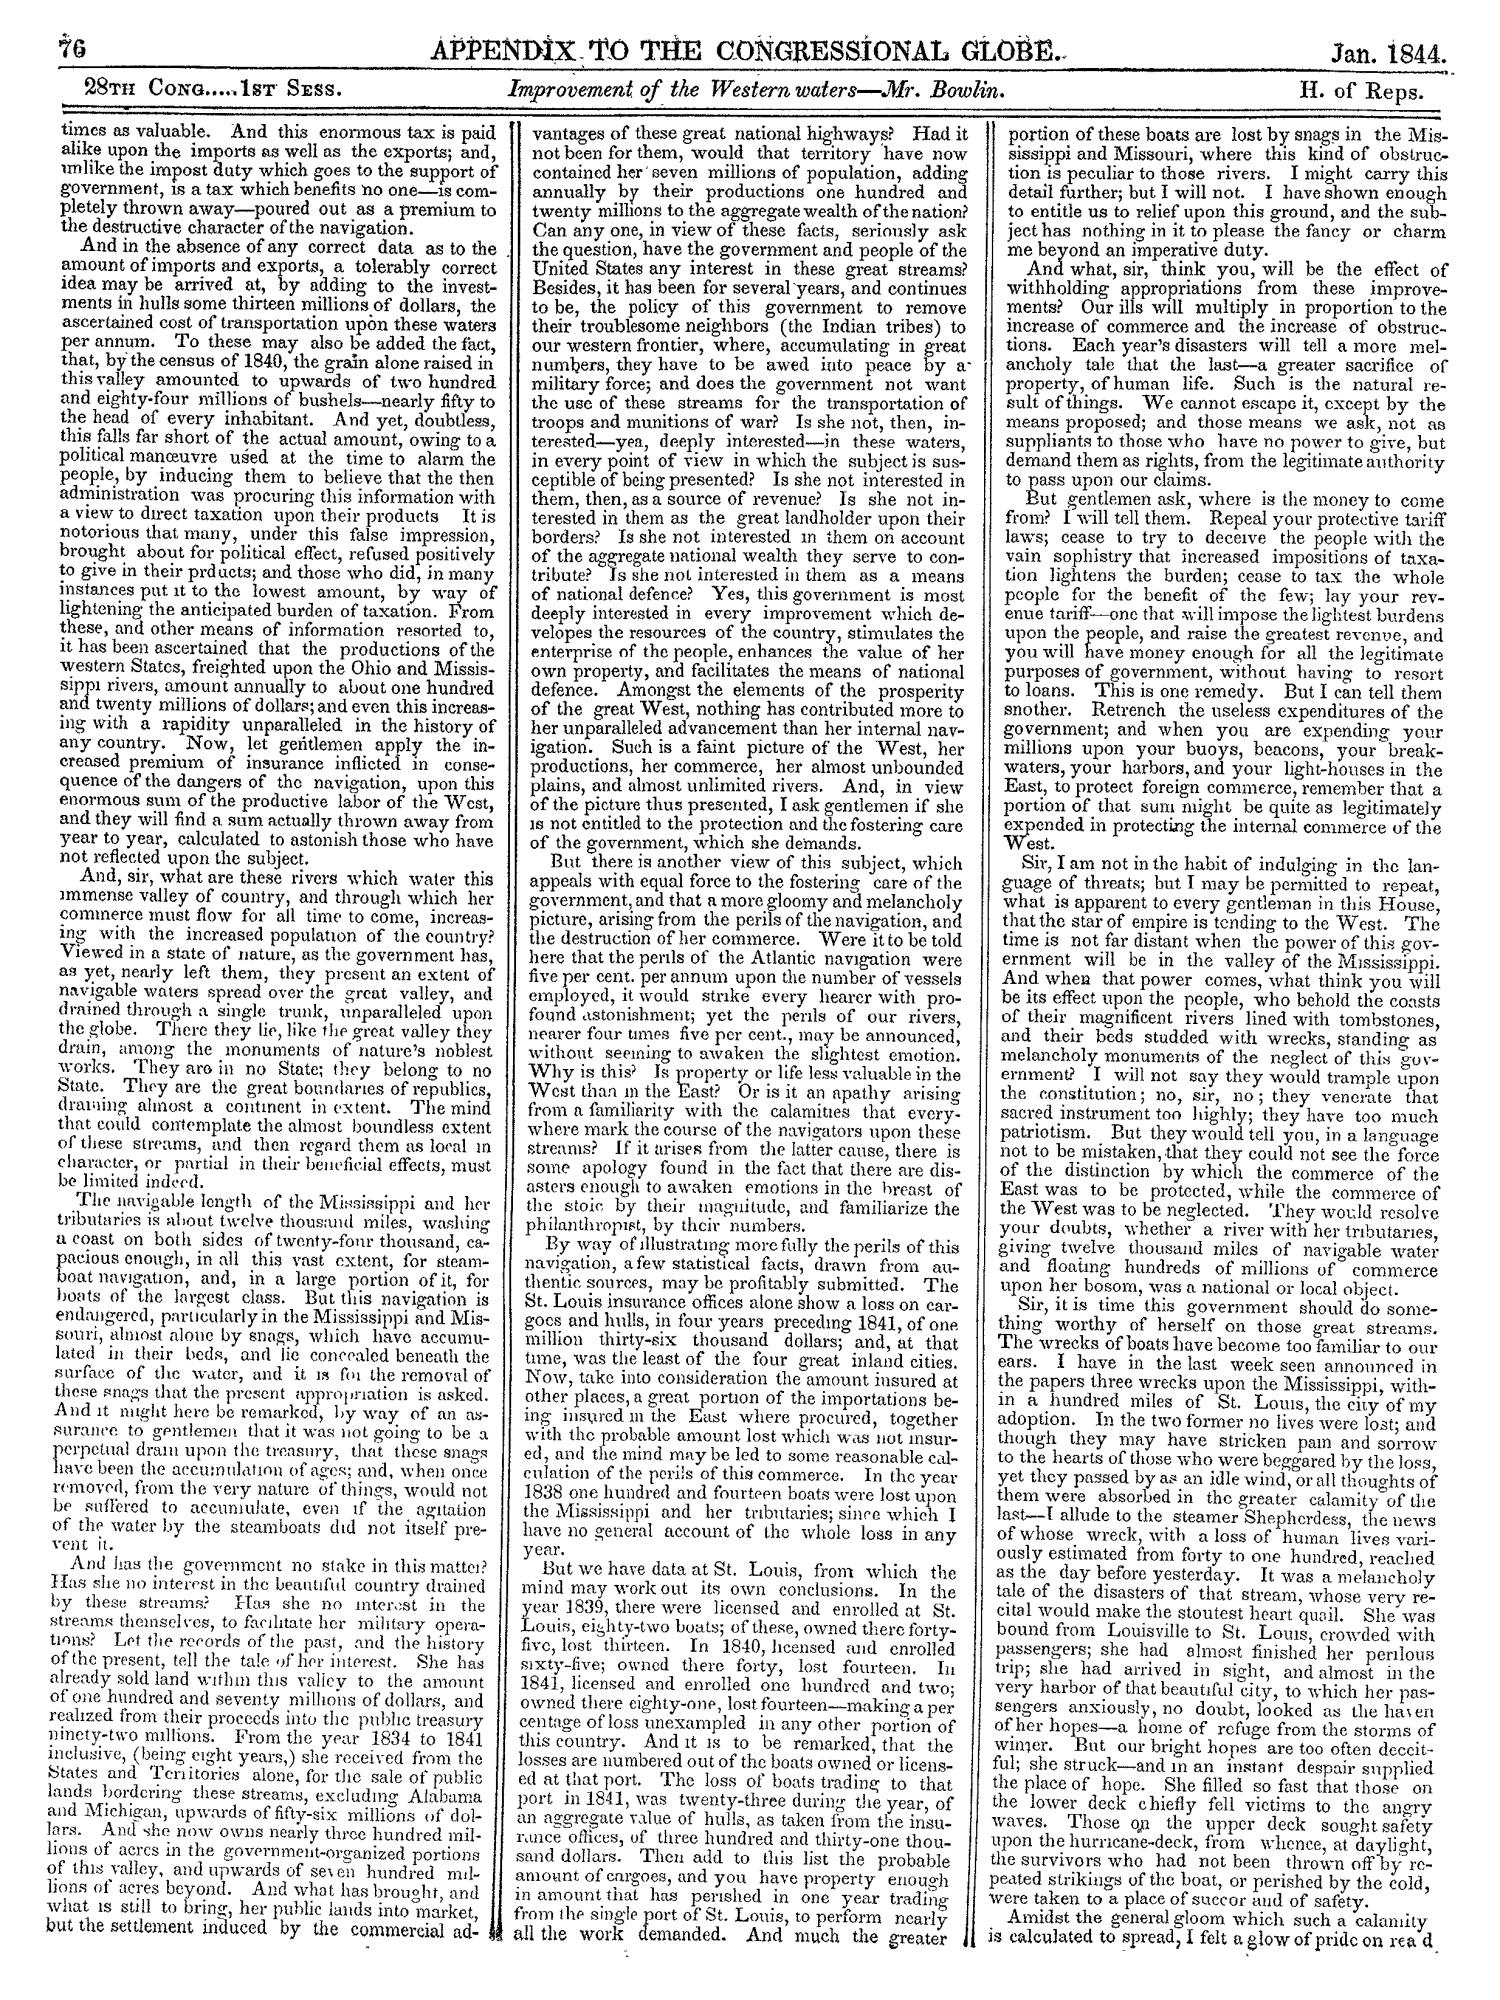 The Congressional Globe, Volume 13, Part 2: Twenty-Eighth Congress, First Session                                                                                                      76